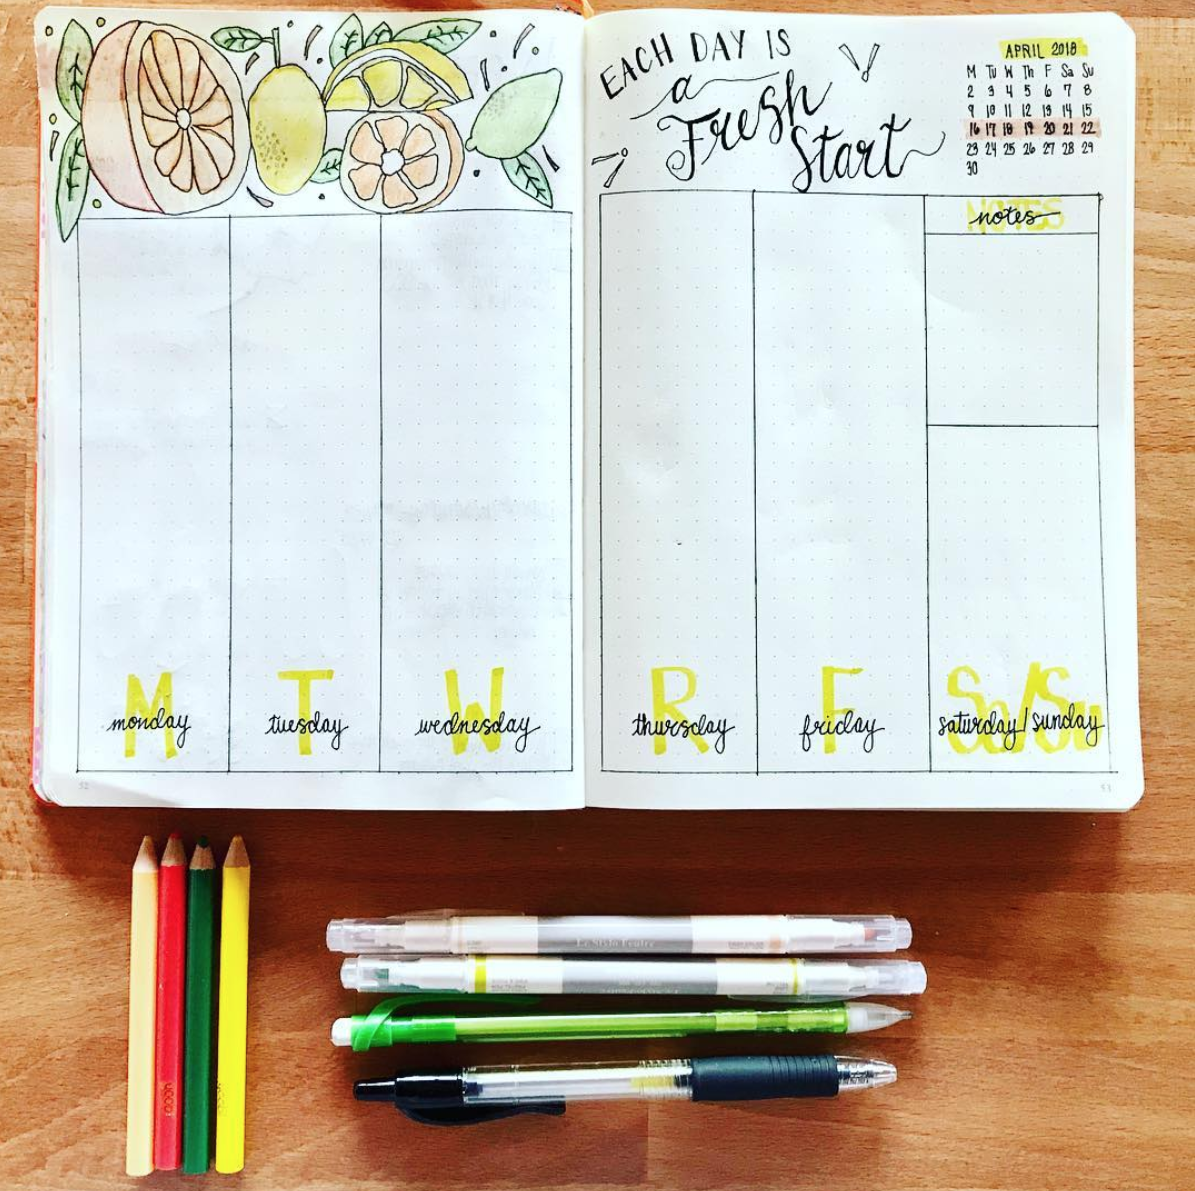 Start each week with a fresh layout. More weekly ideas at SweetPlanit.com